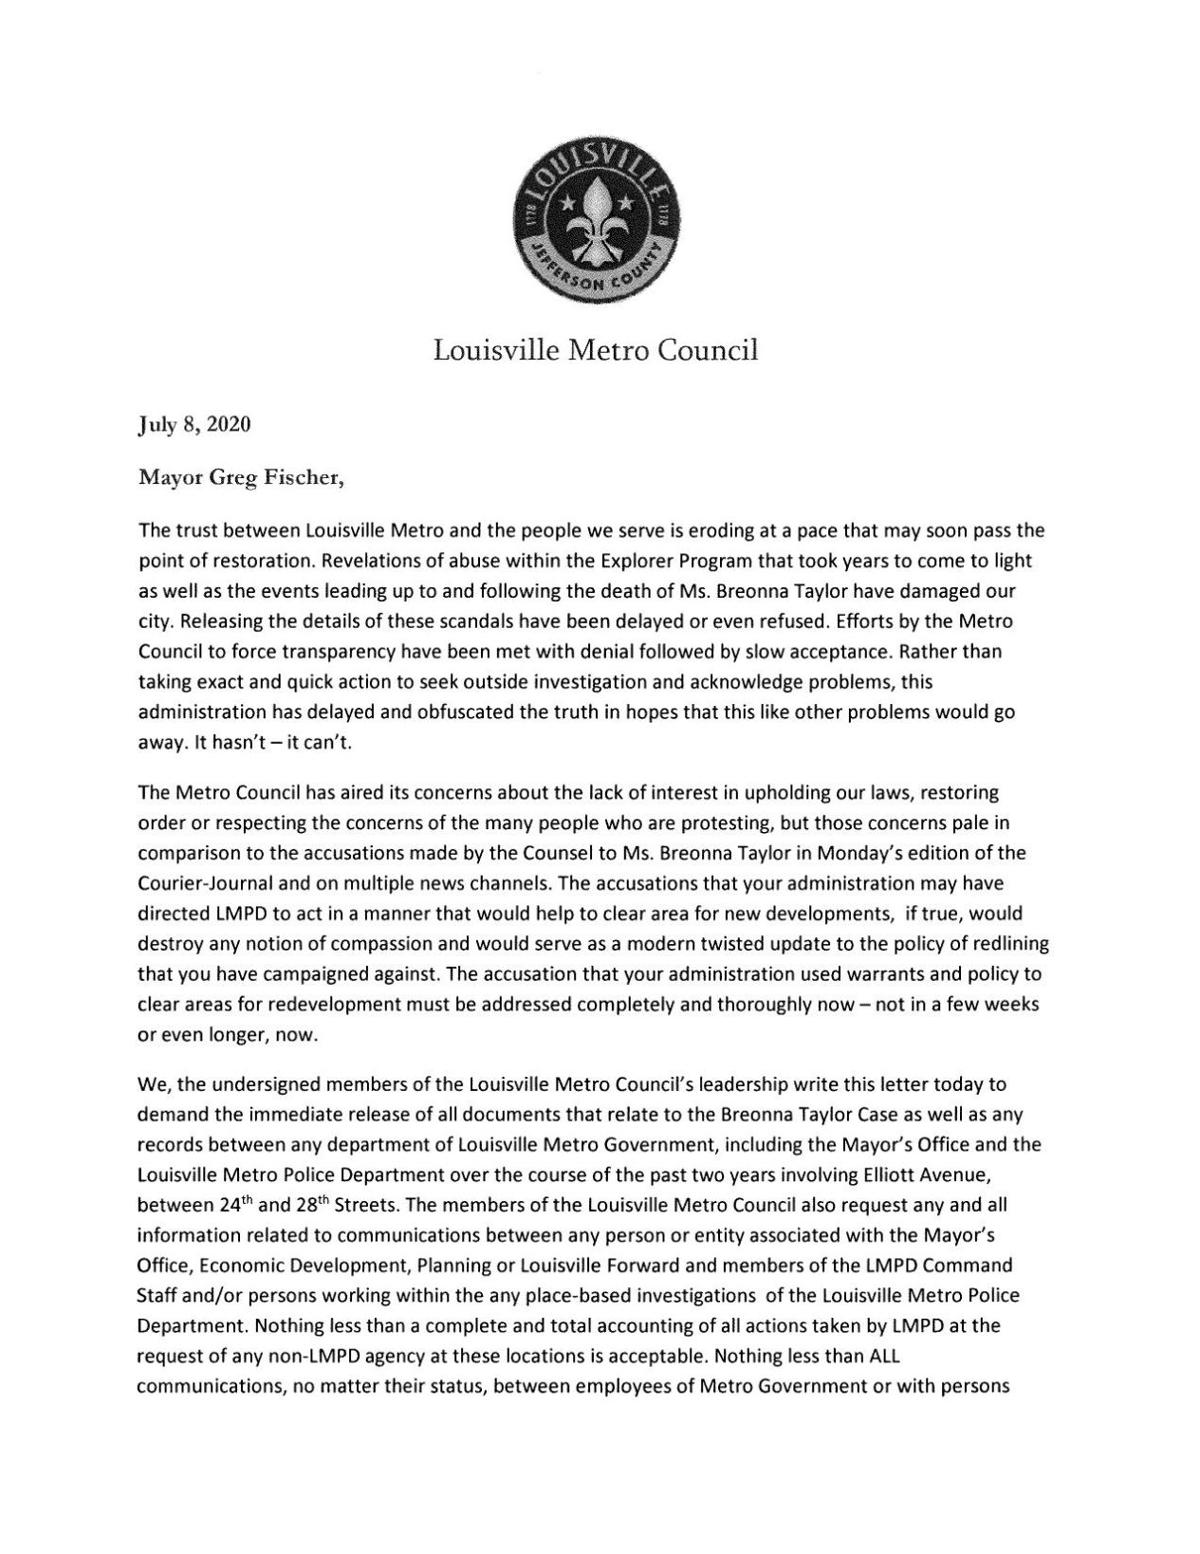 Metro Council letter to Mayor Fischer about transparency